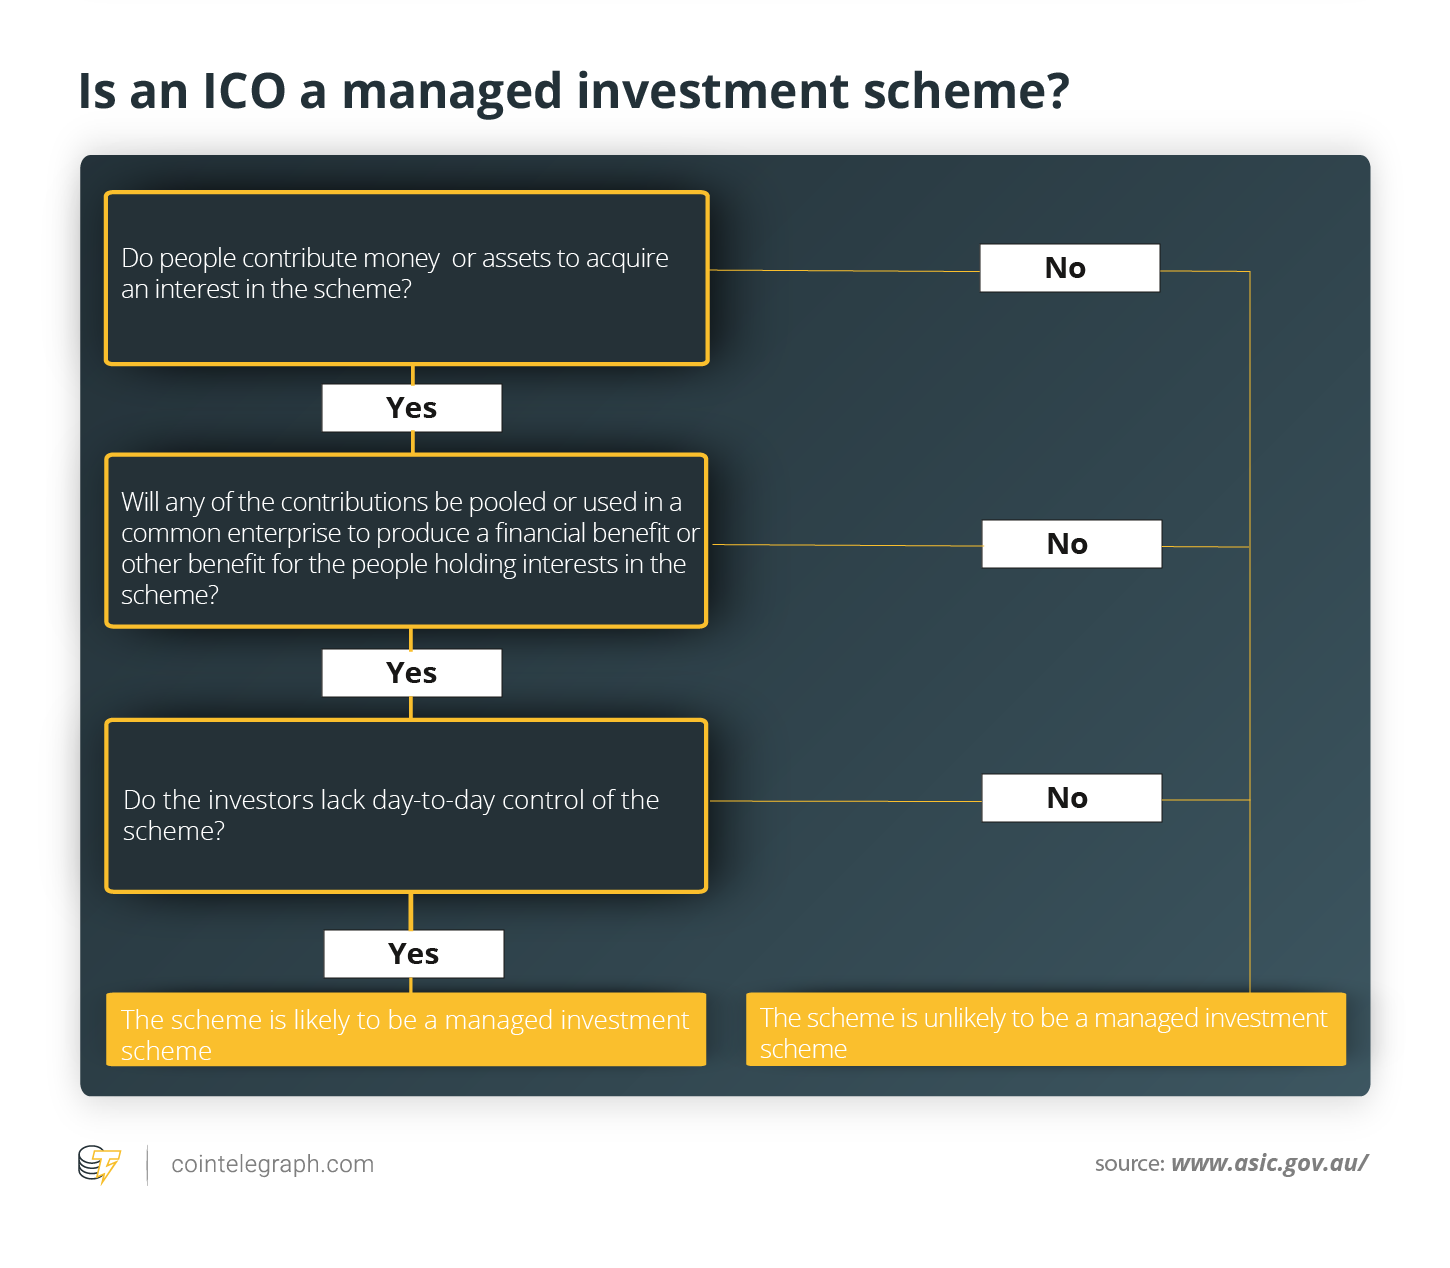 Is an ICO a managed investment scheme?